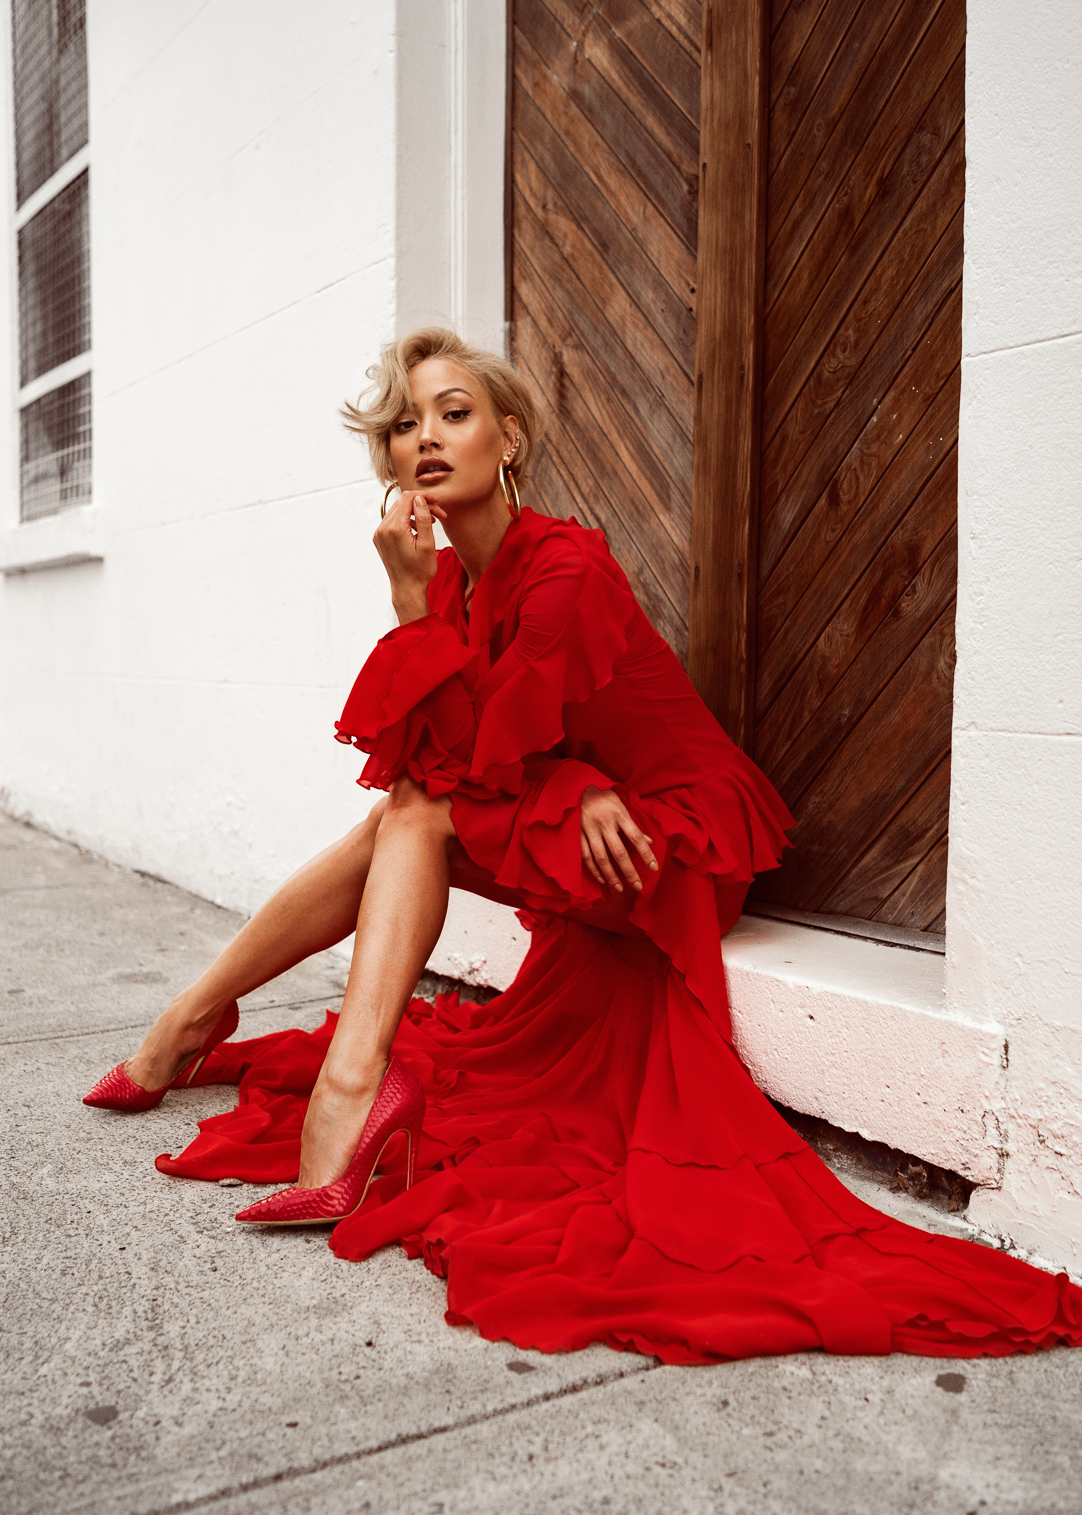 Red Dress Red Shoes